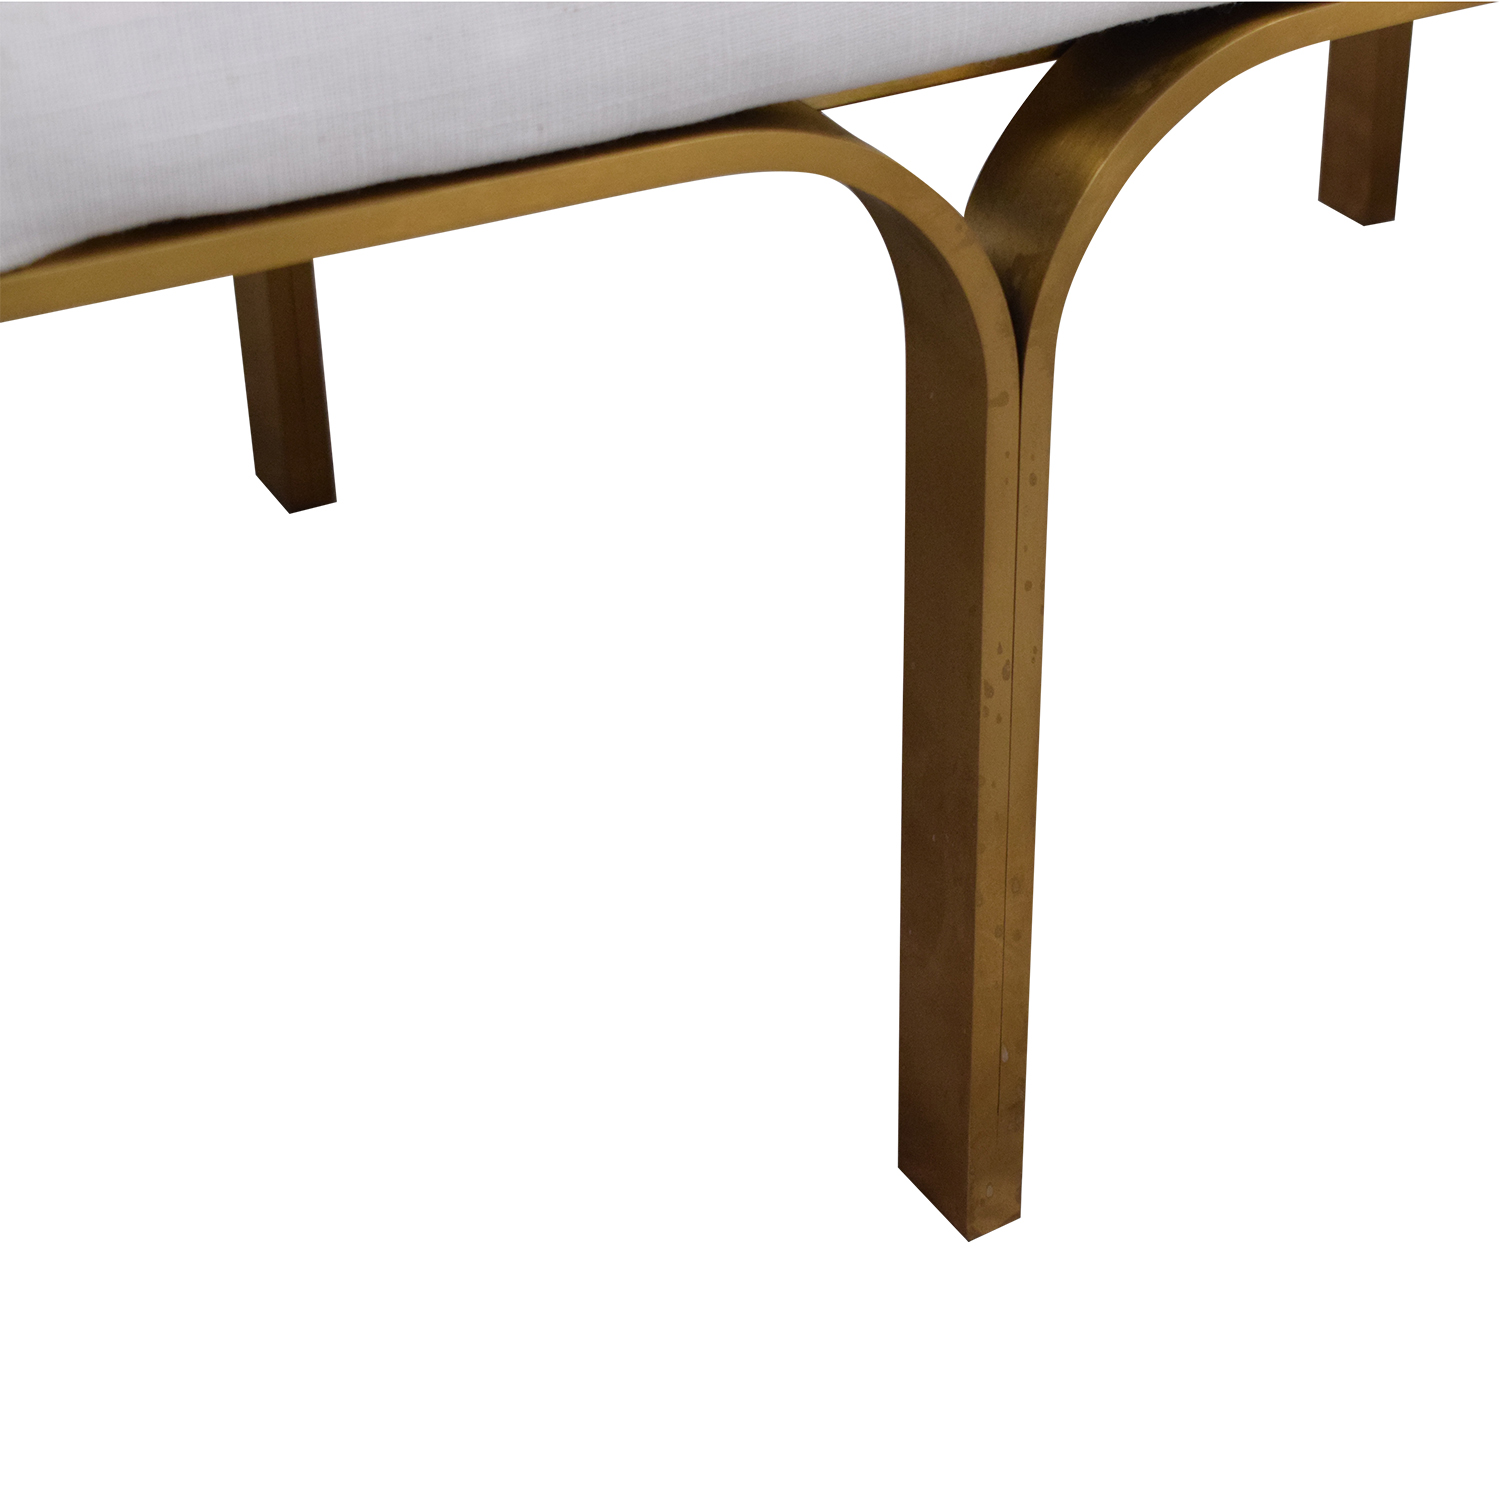 Restoration Hardware 1960s Link Bench / Benches